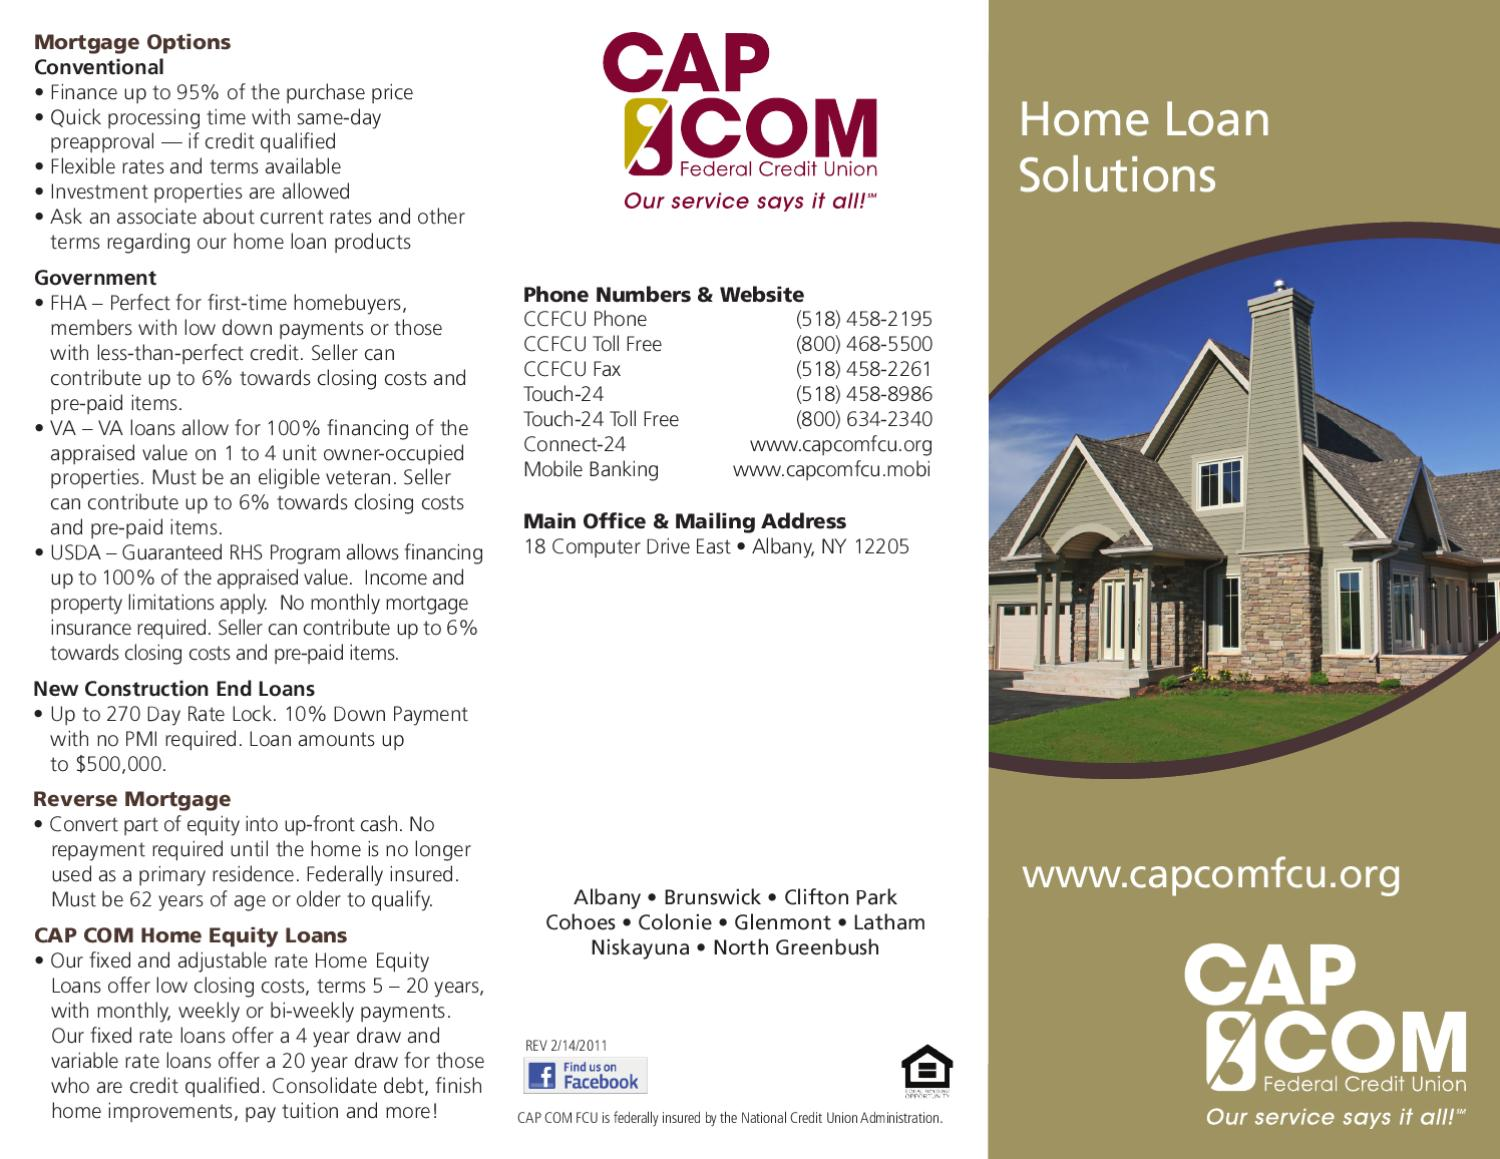 Home Loan Solutions by CAP COM Federal Credit Union - issuu